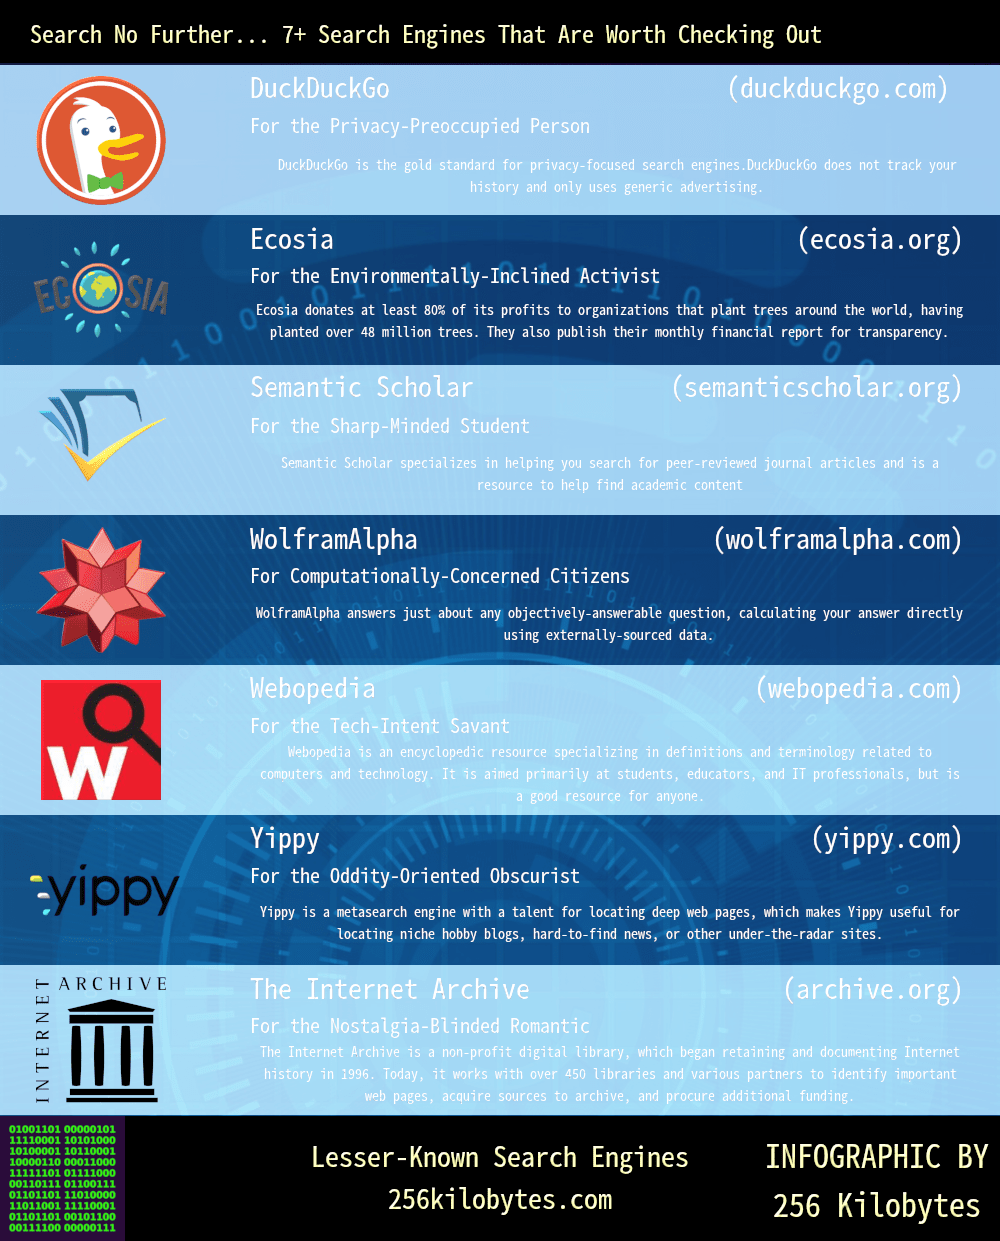 Search Engine Infographic - 7+ Search Engines That Are Worth Checking Out